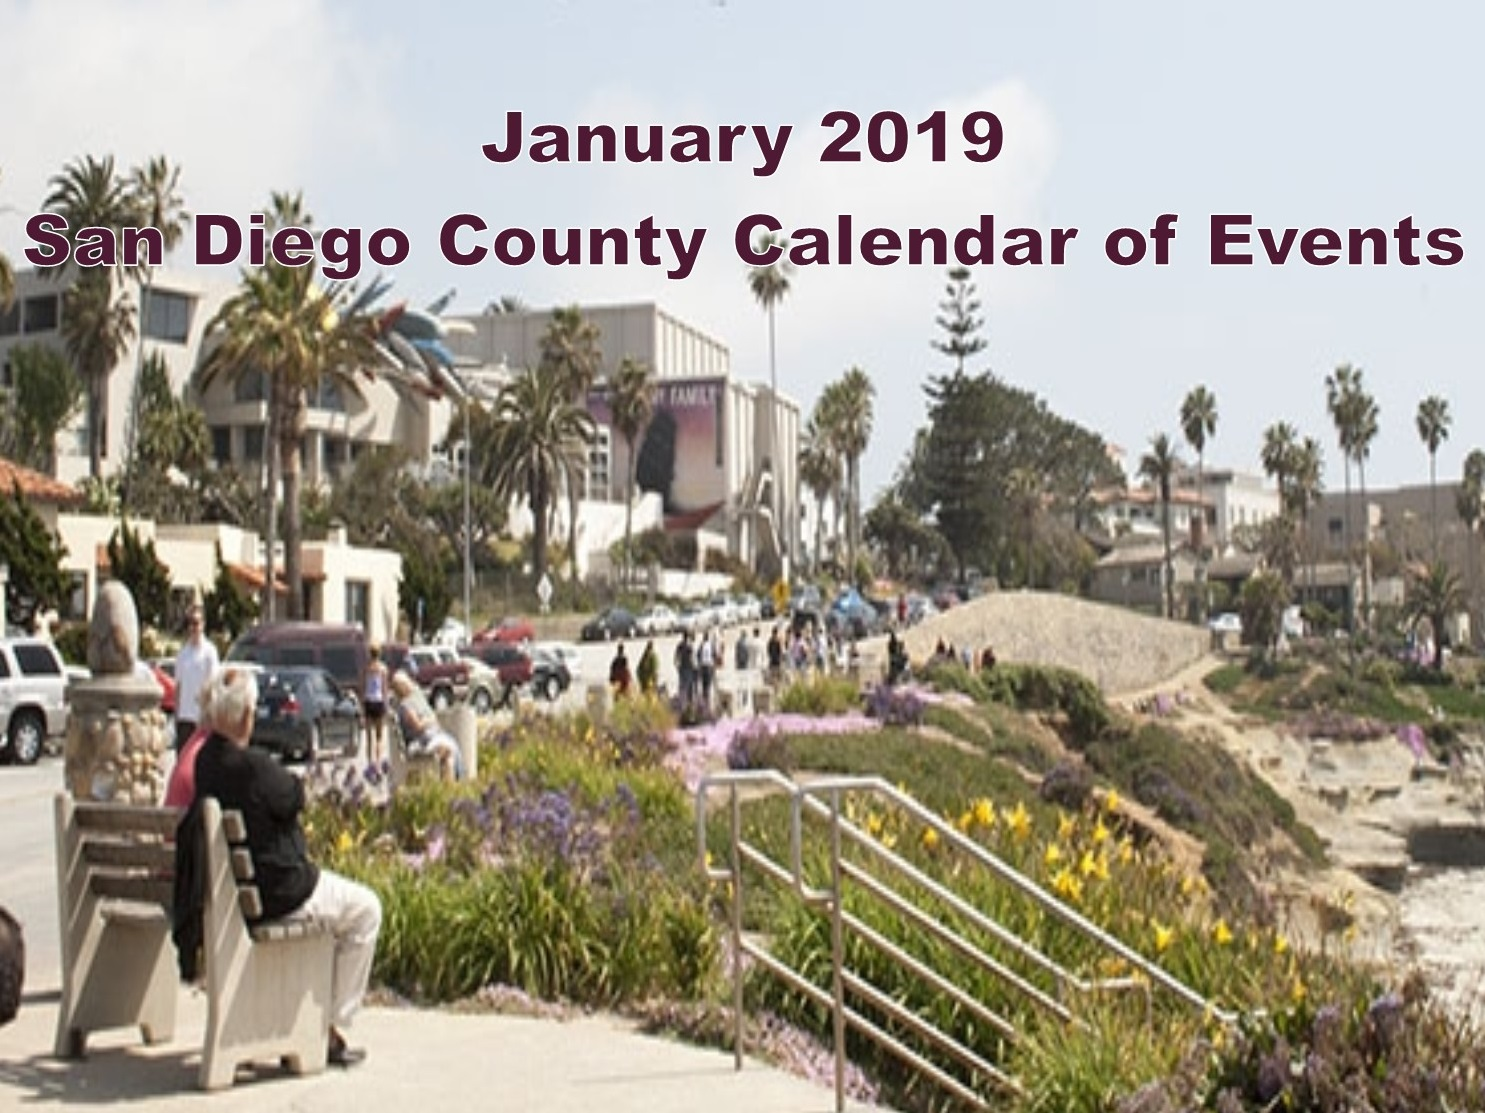 San Diego Calendar Of Events January 2019 January 2019 San Diego County Calendar Of Events